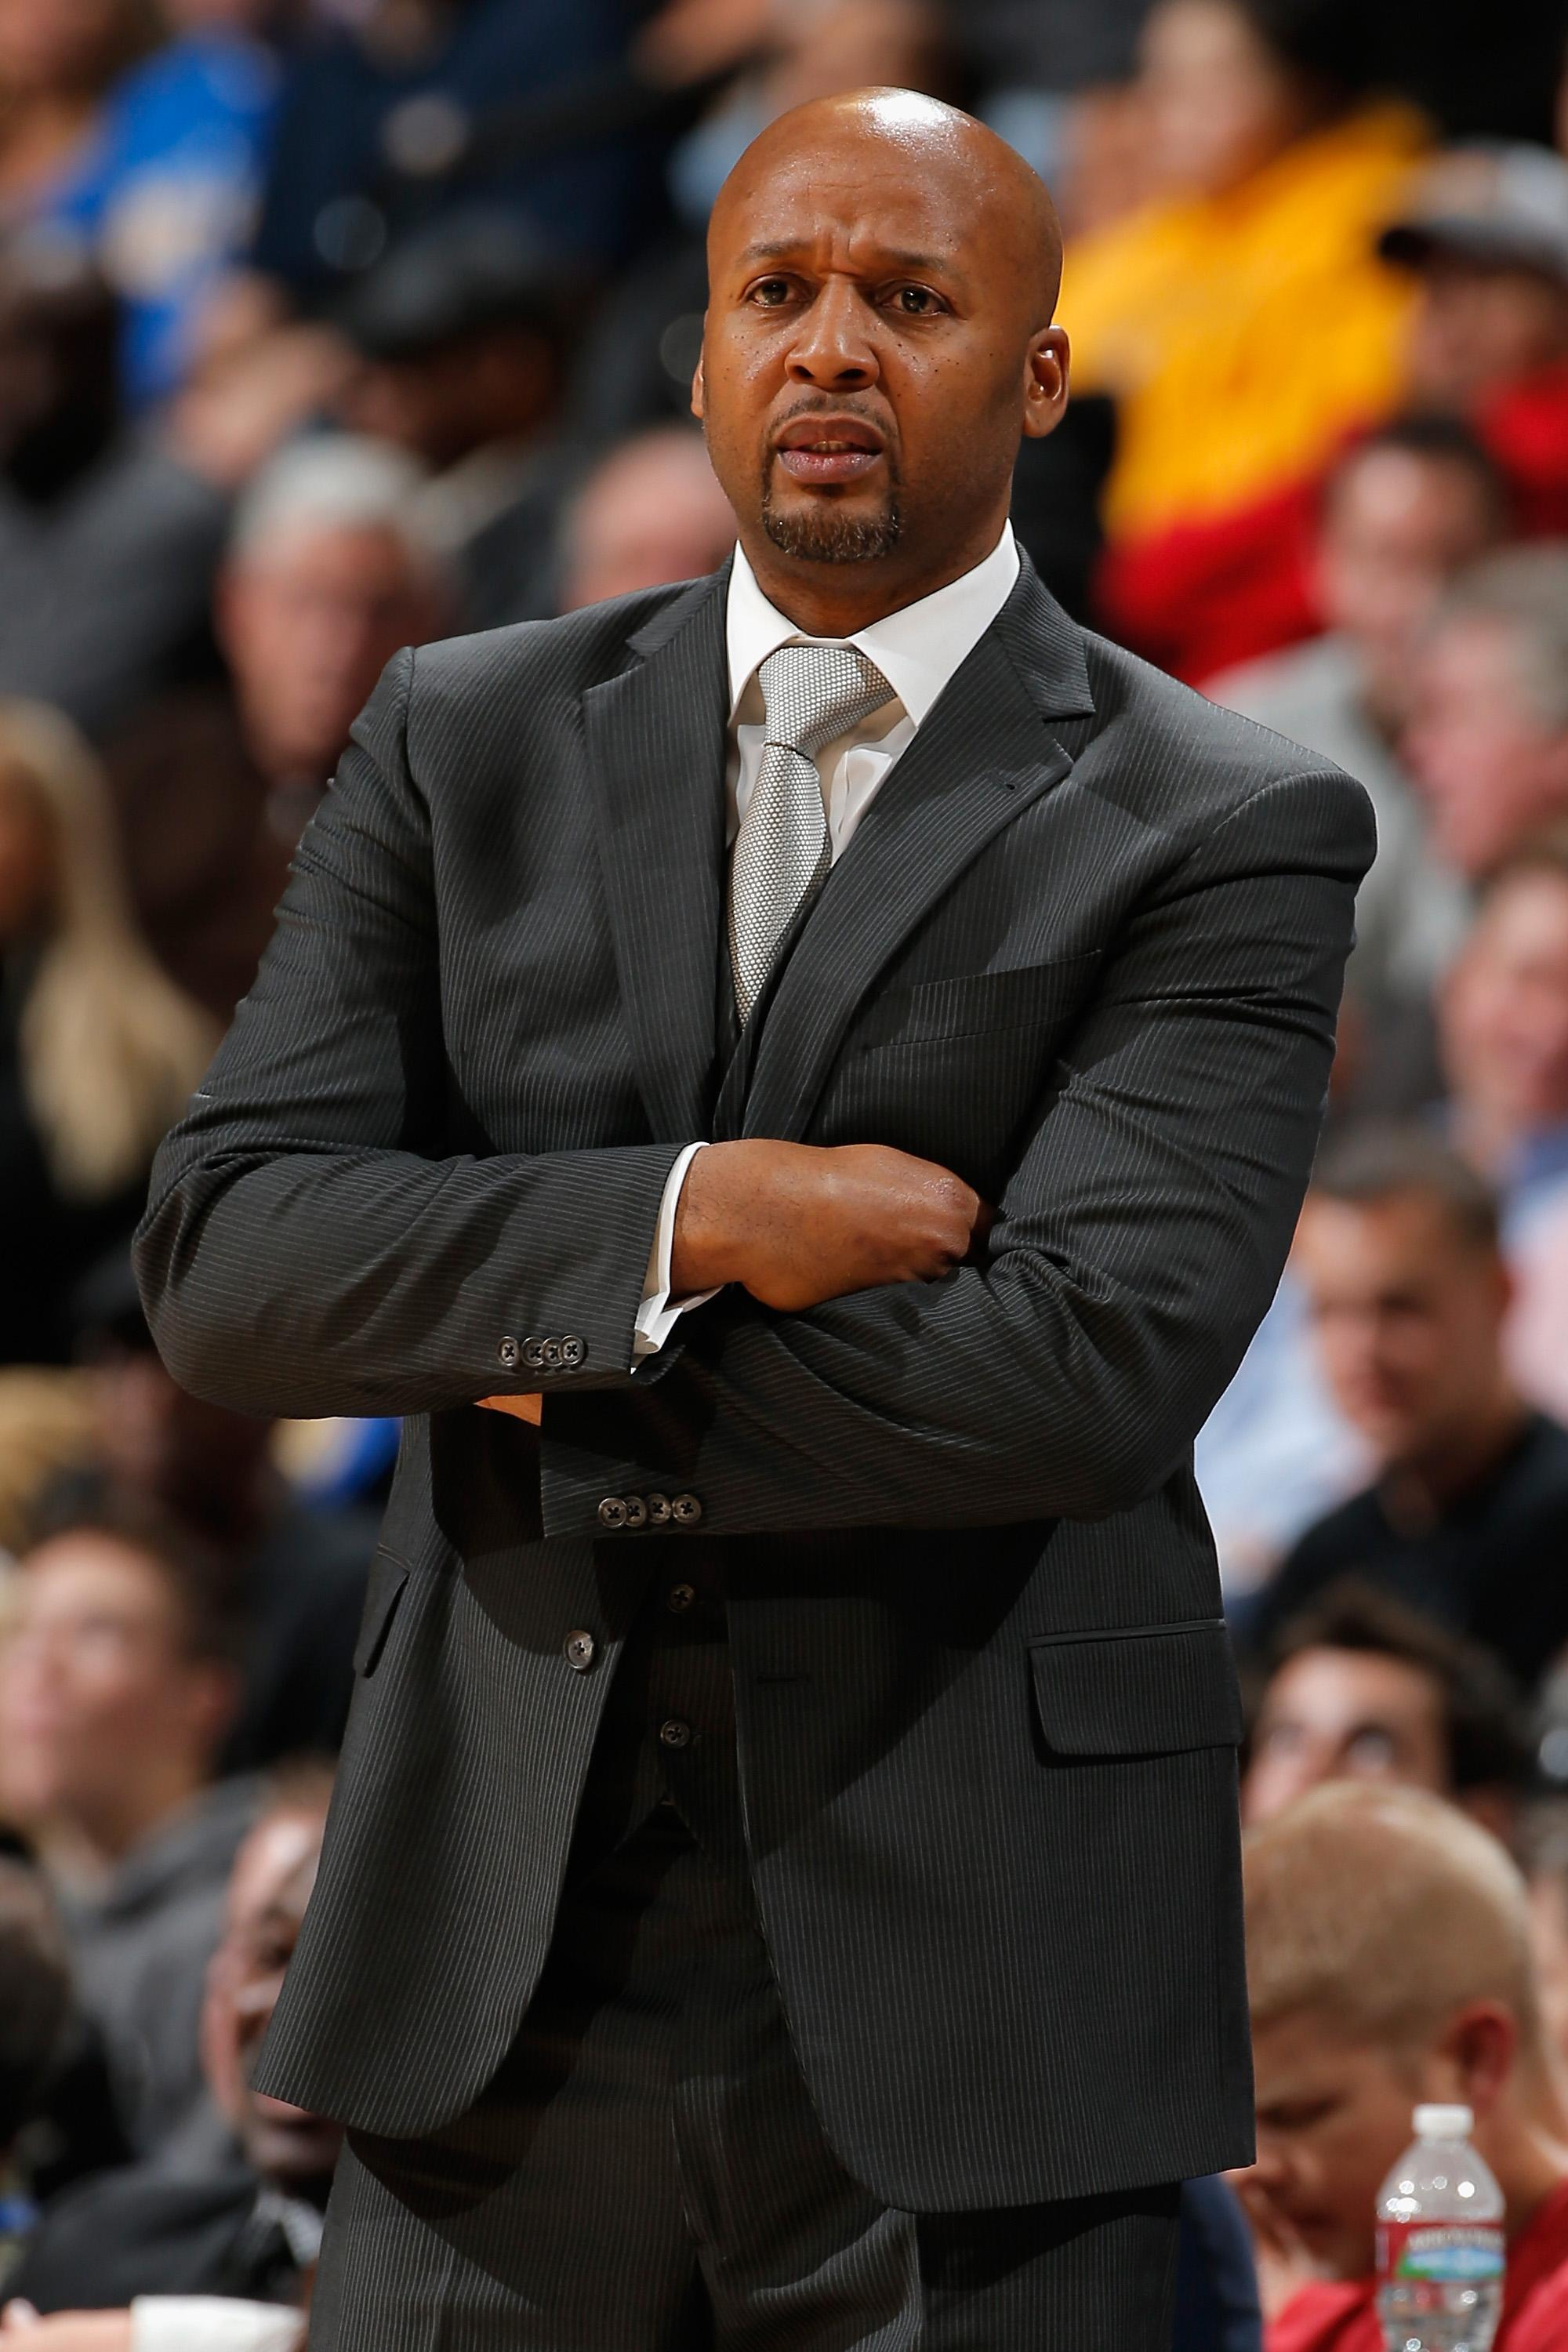 Denver Nuggets fire coach Brian Shaw with team in slide